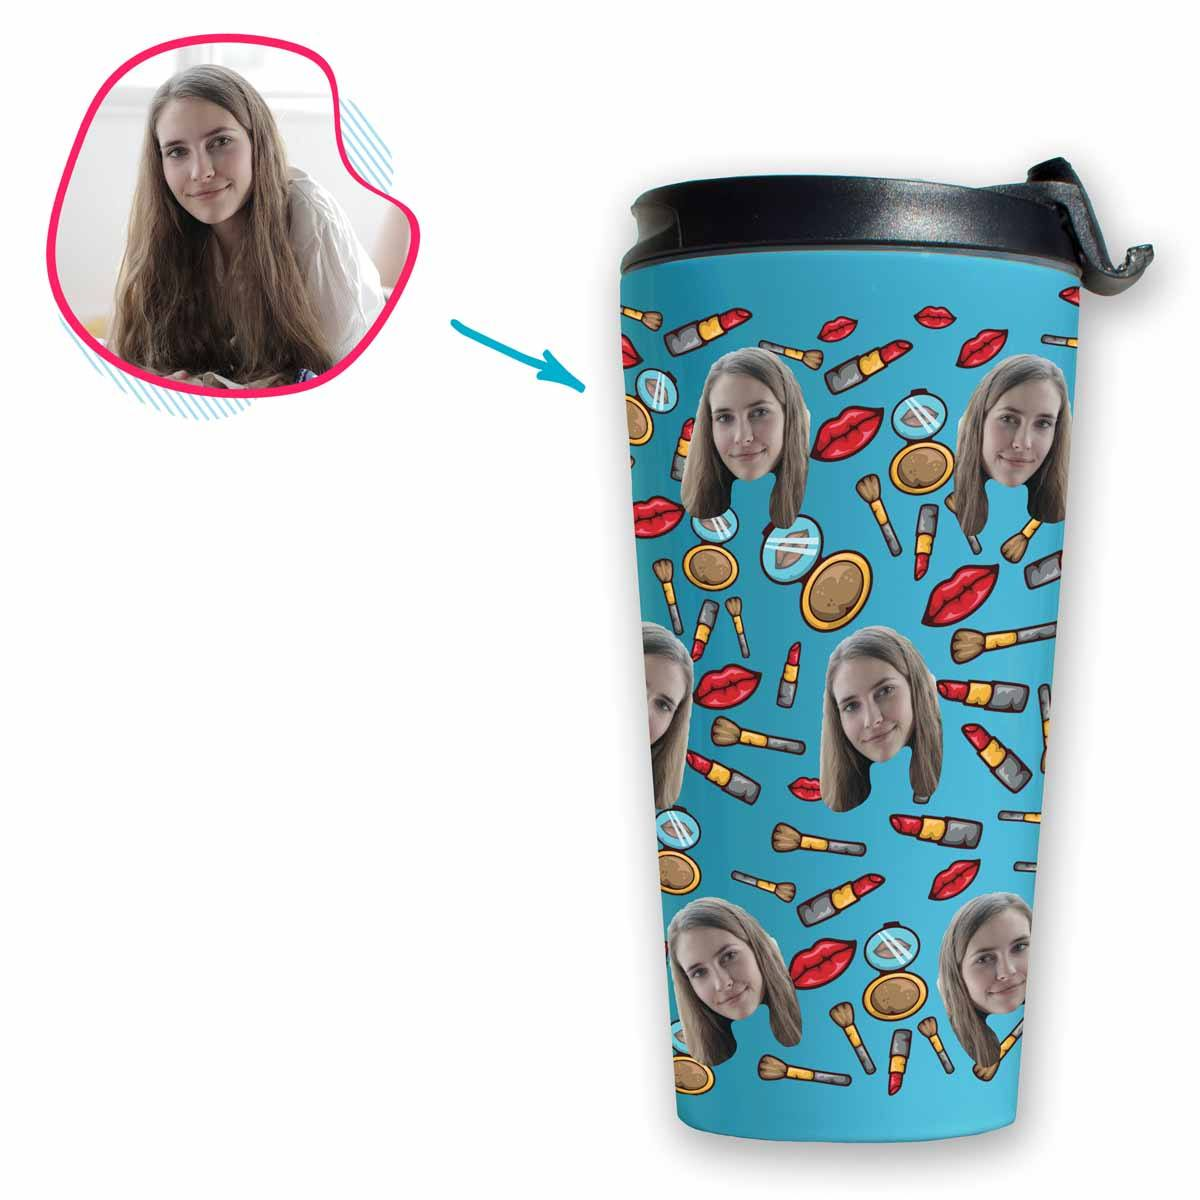 Blue Makeup personalized travel mug with photo of face printed on it